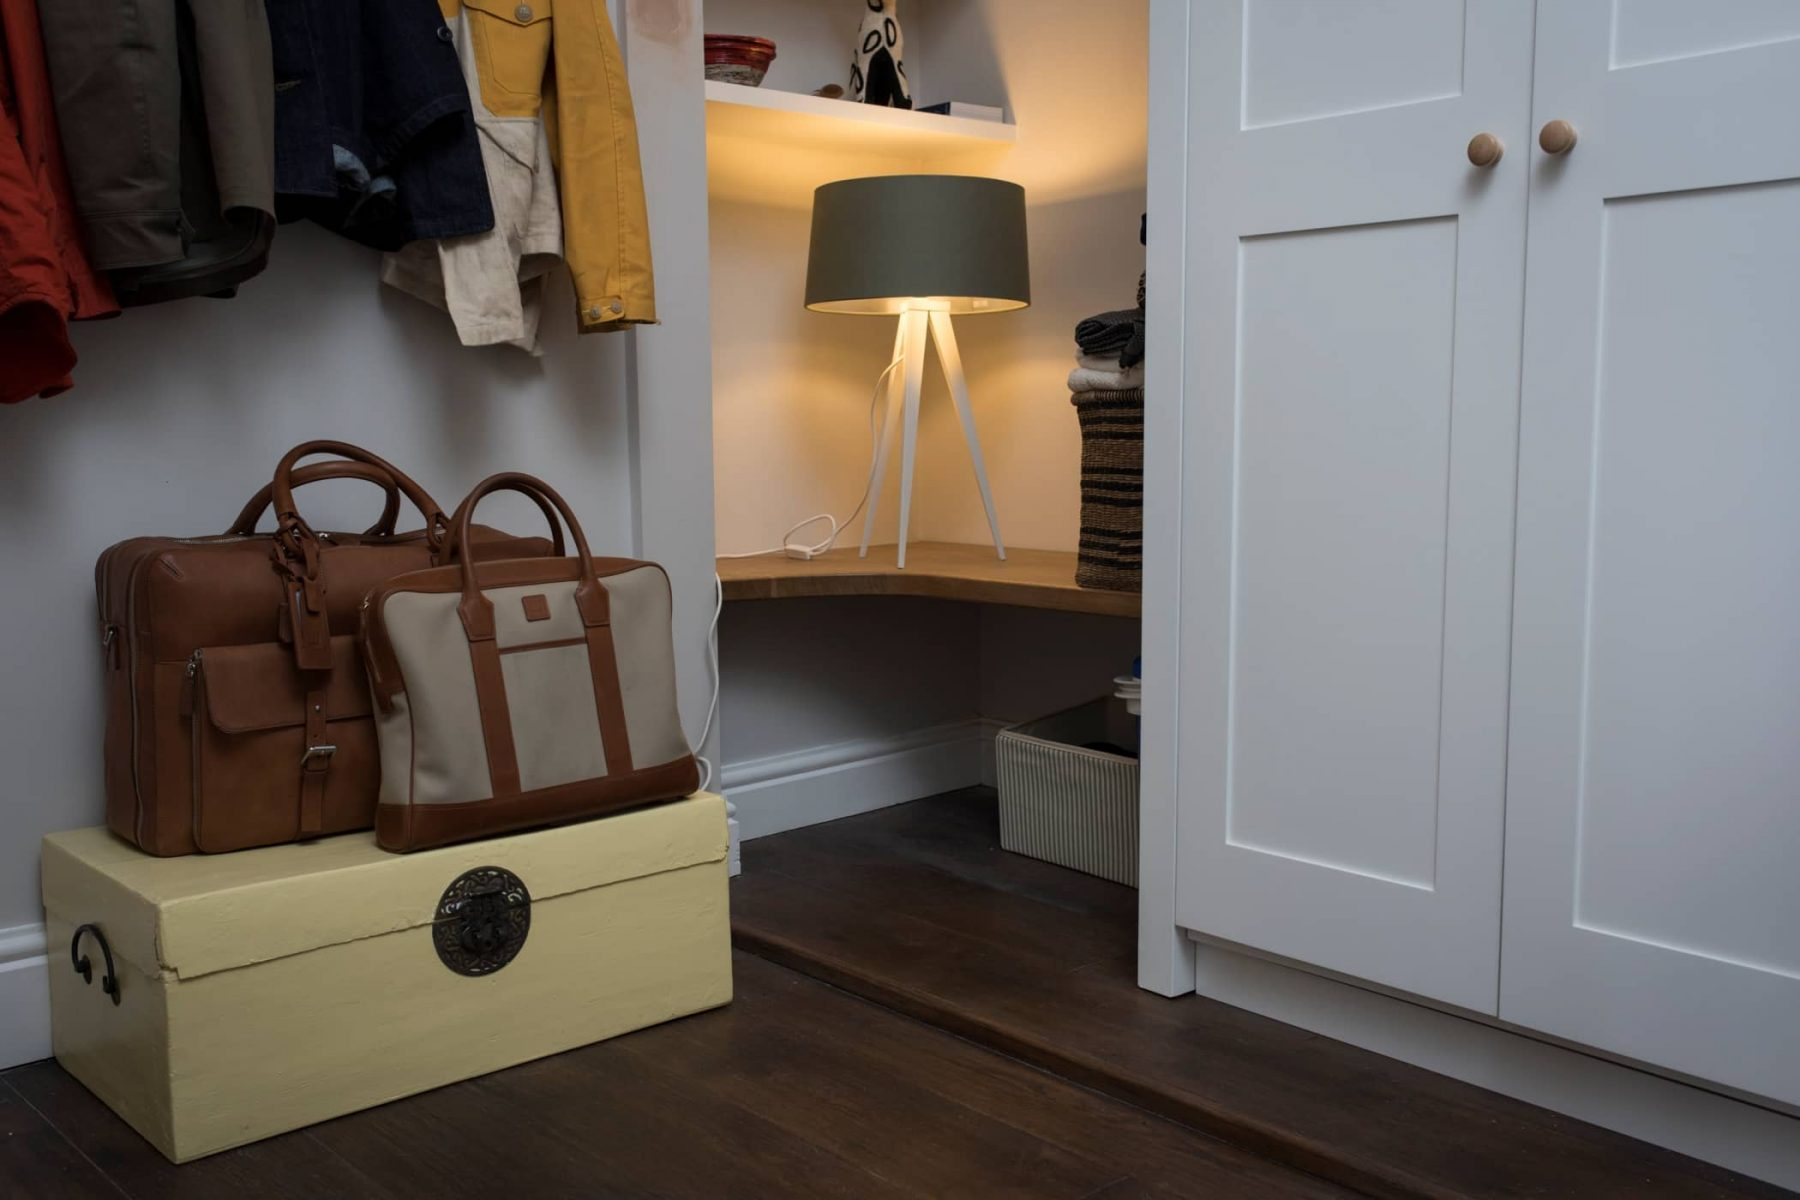 Country home hallway and coat hooks